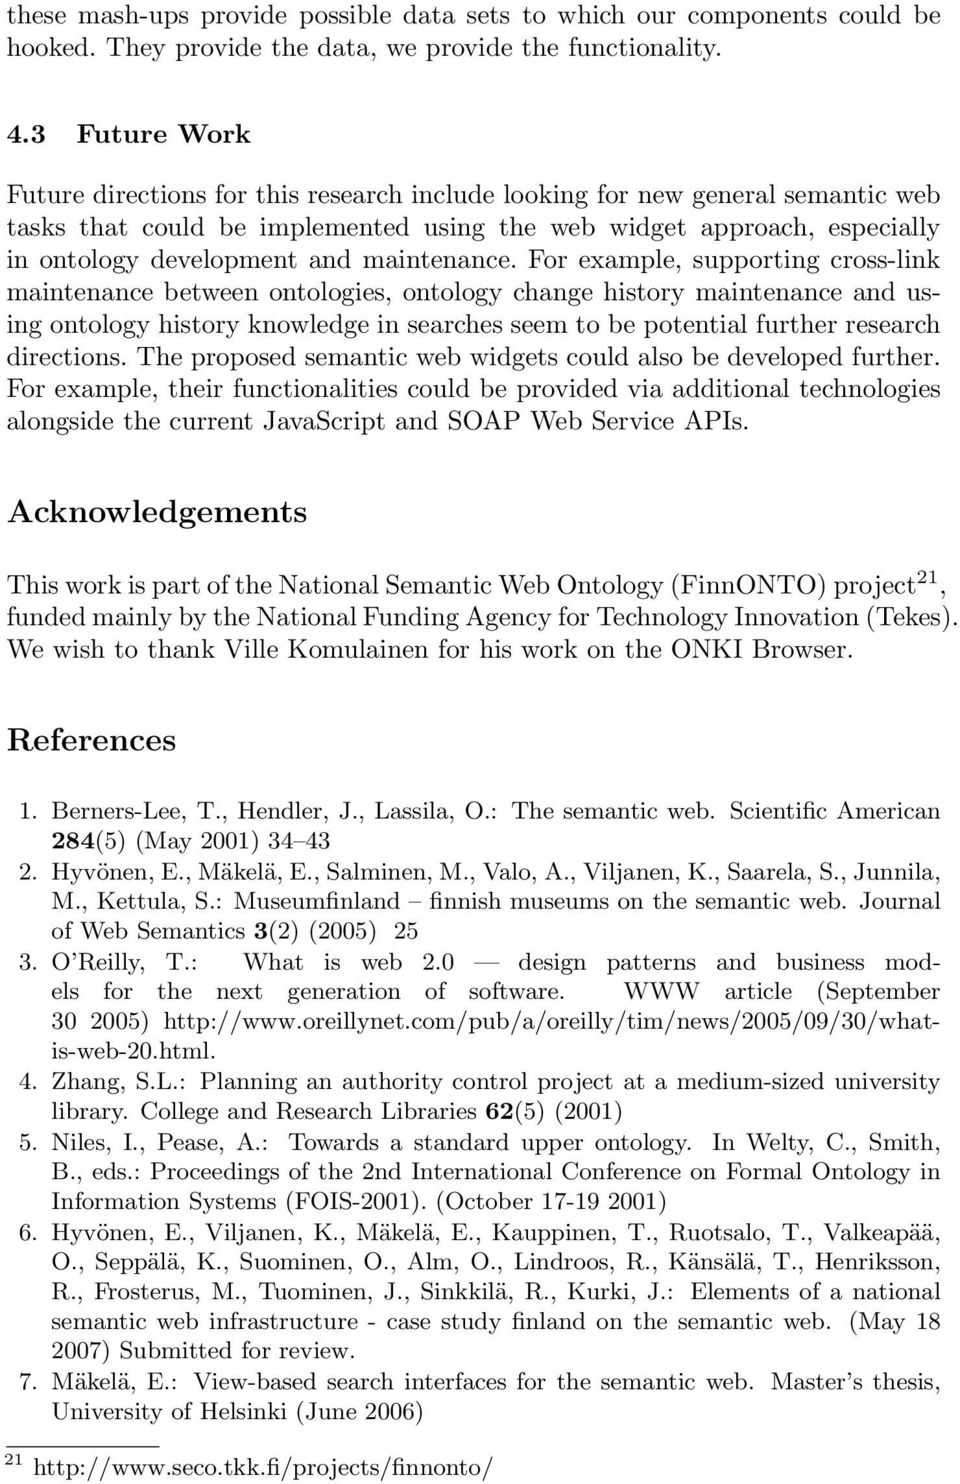 : A method for determining ontology-based semantic relevance. In: Proceedings of the 18th International Conference on Database and Expert Systems Applications. (September 3-7 2007) 27. Valkeapää, O.